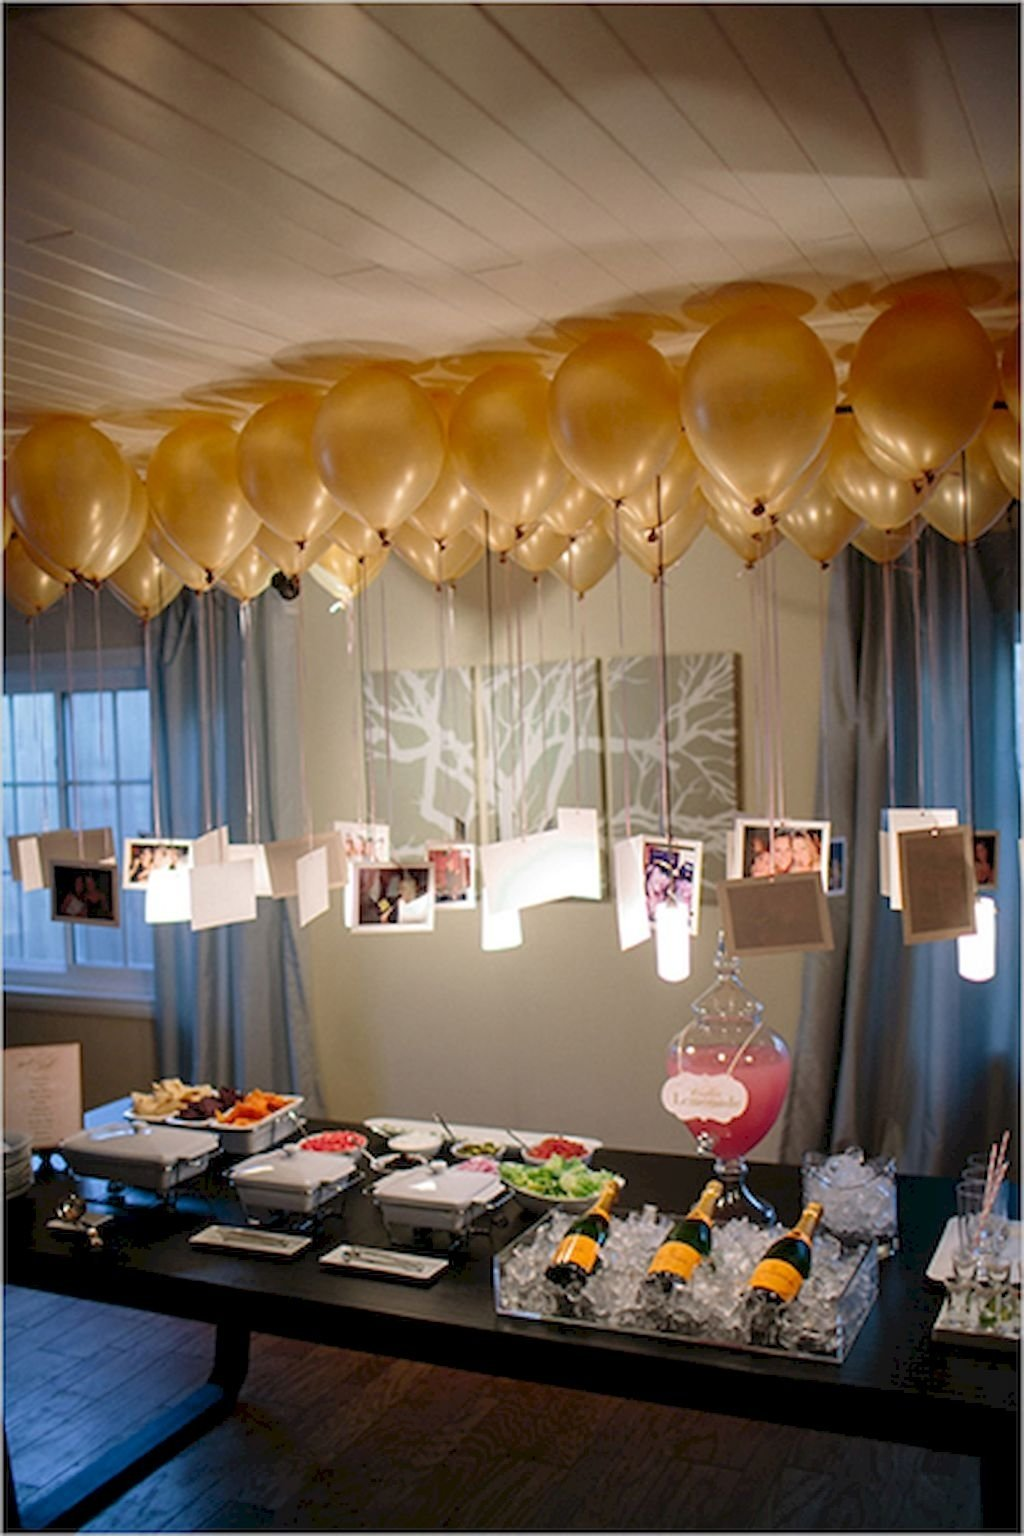 10 Stunning Decorating Ideas For Bridal Shower 75 creative bridal shower decoration ideas bitecloth